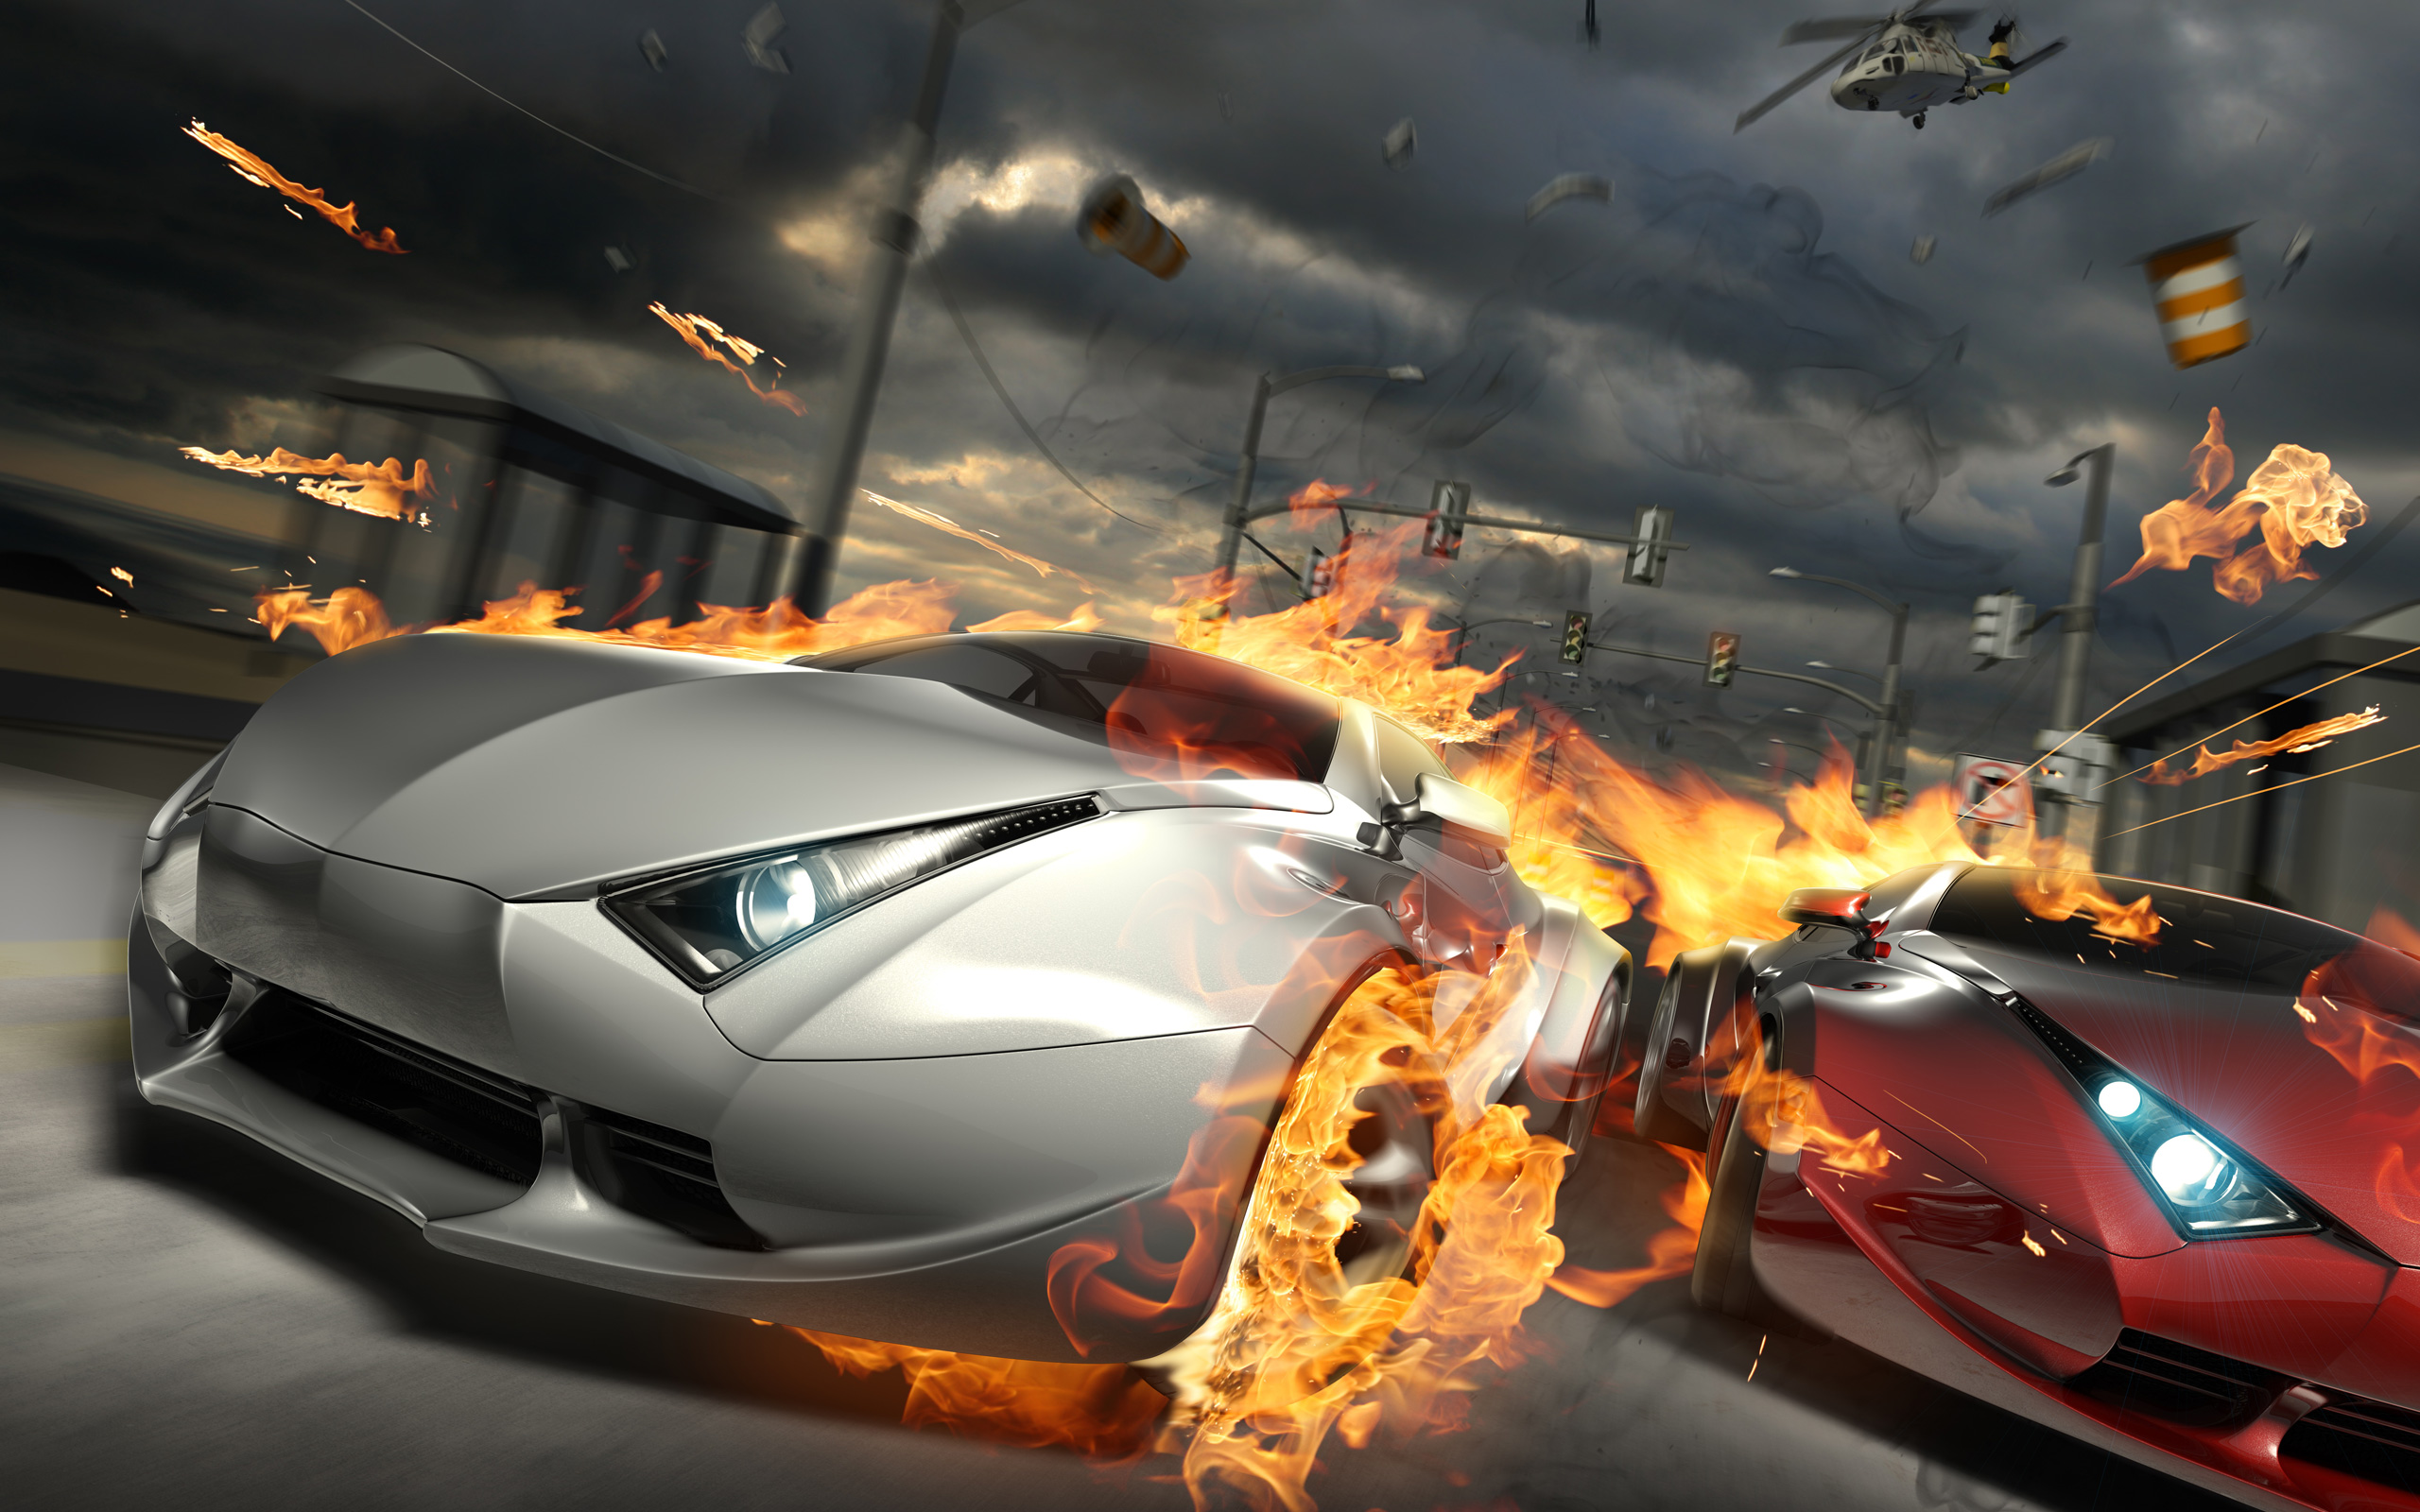 Top Hd Wallpapers Cars Wallpapers Desktop Hd: 3D Cars HD Wallpapers